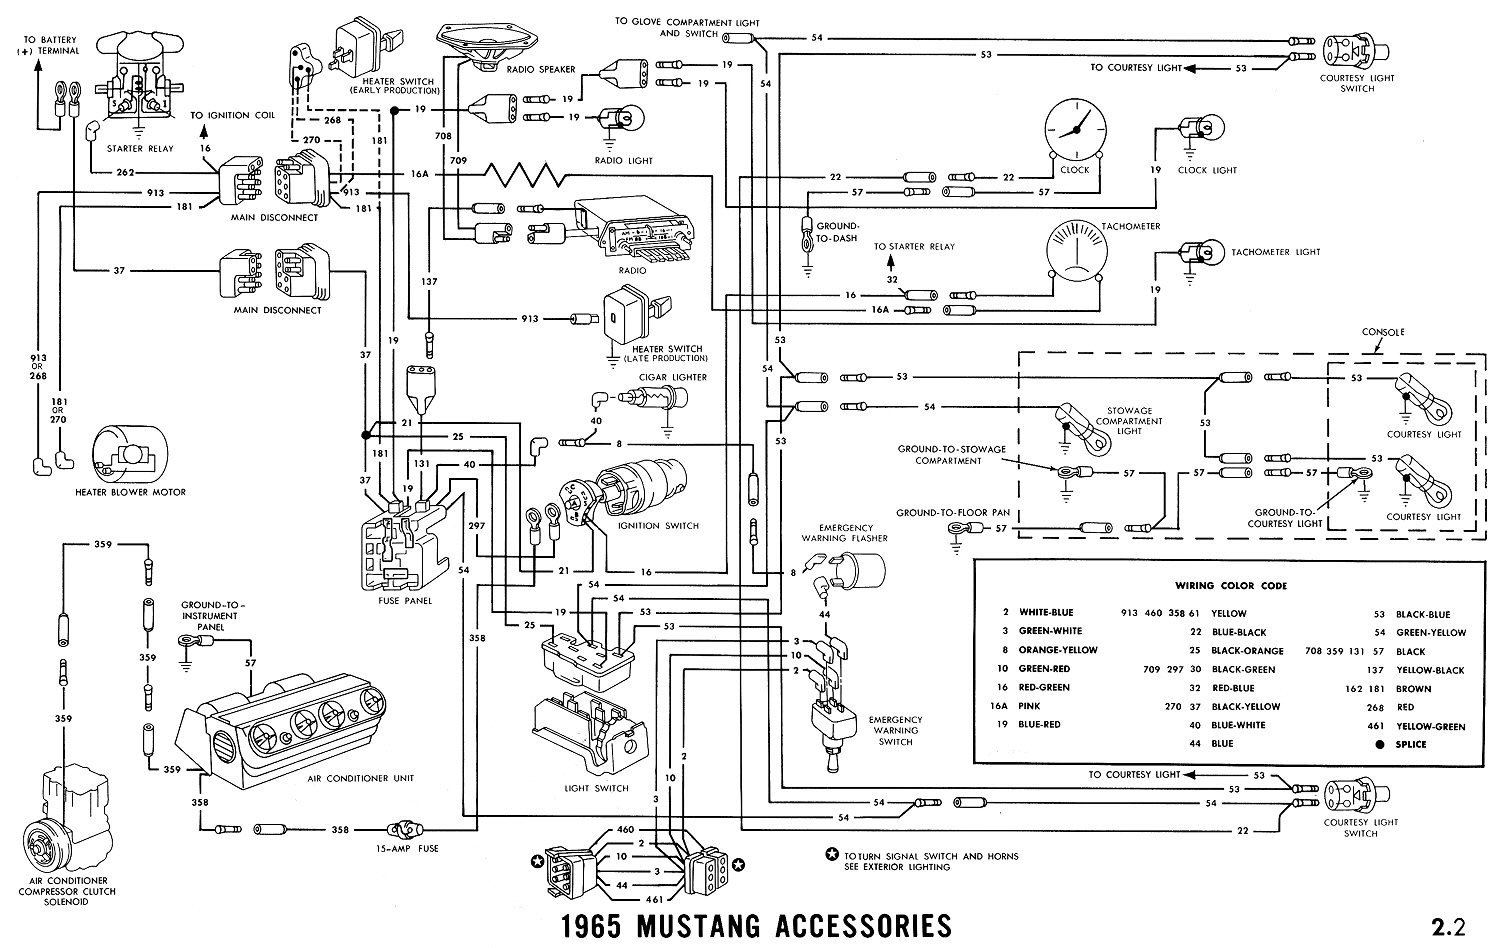 1970 thunderbird instrument cluster diagram wiring schematic 1970 corvette wiring diagram 1969 mustang dash wiring diagram simple wiring diagram 1970 challenger wiring diagram 1970 thunderbird instrument cluster diagram wiring schematic